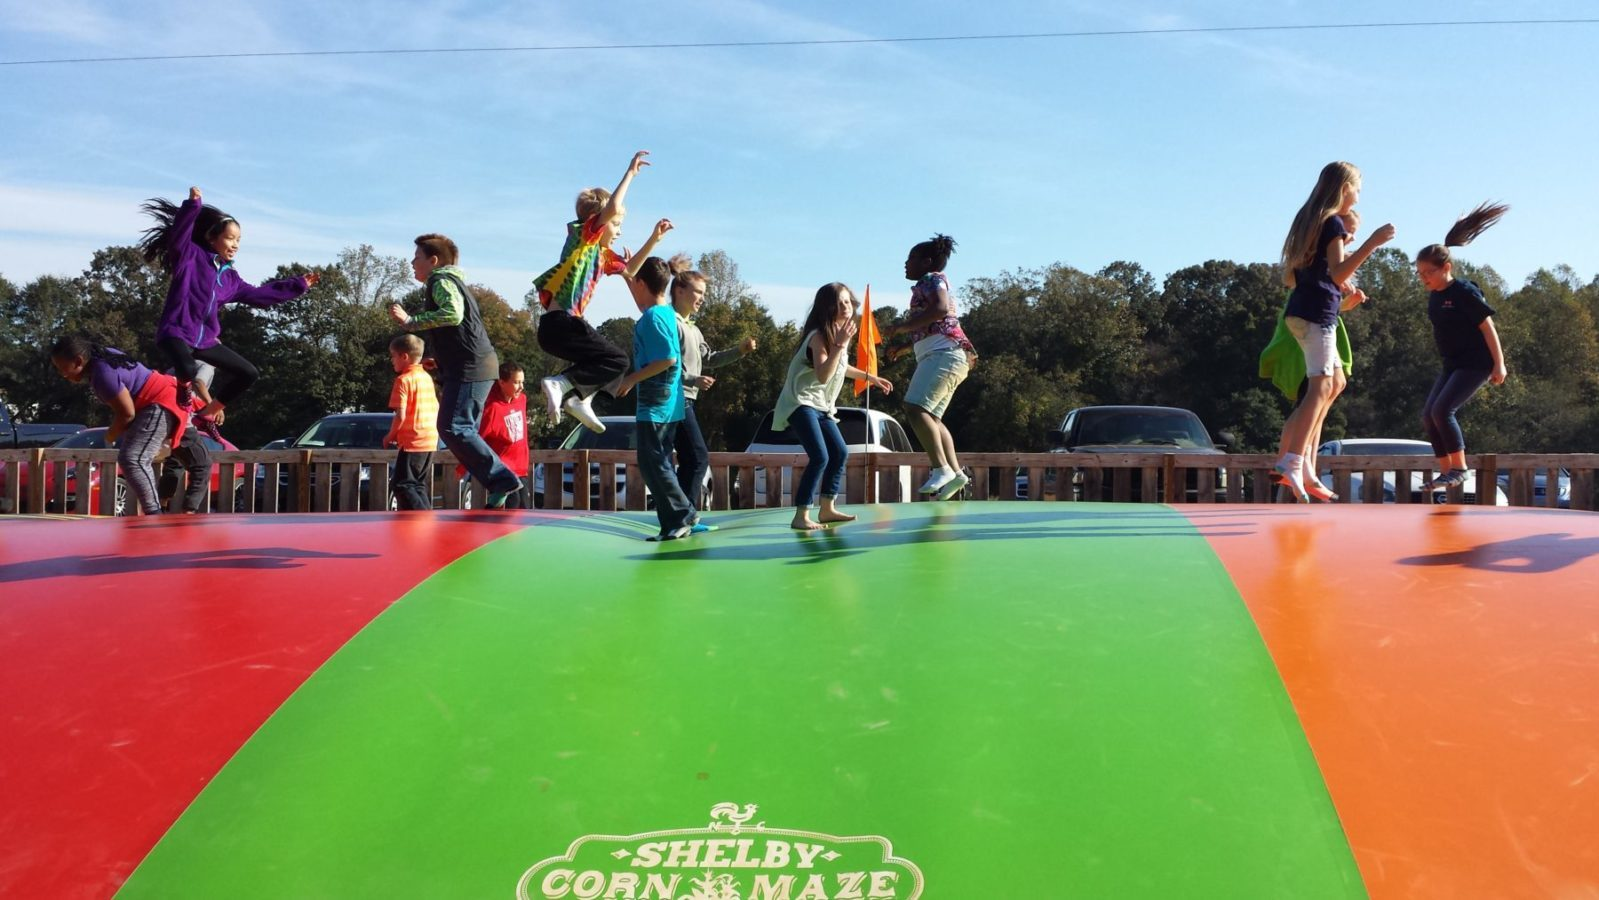 Event image of children playing on bouncy trampoline